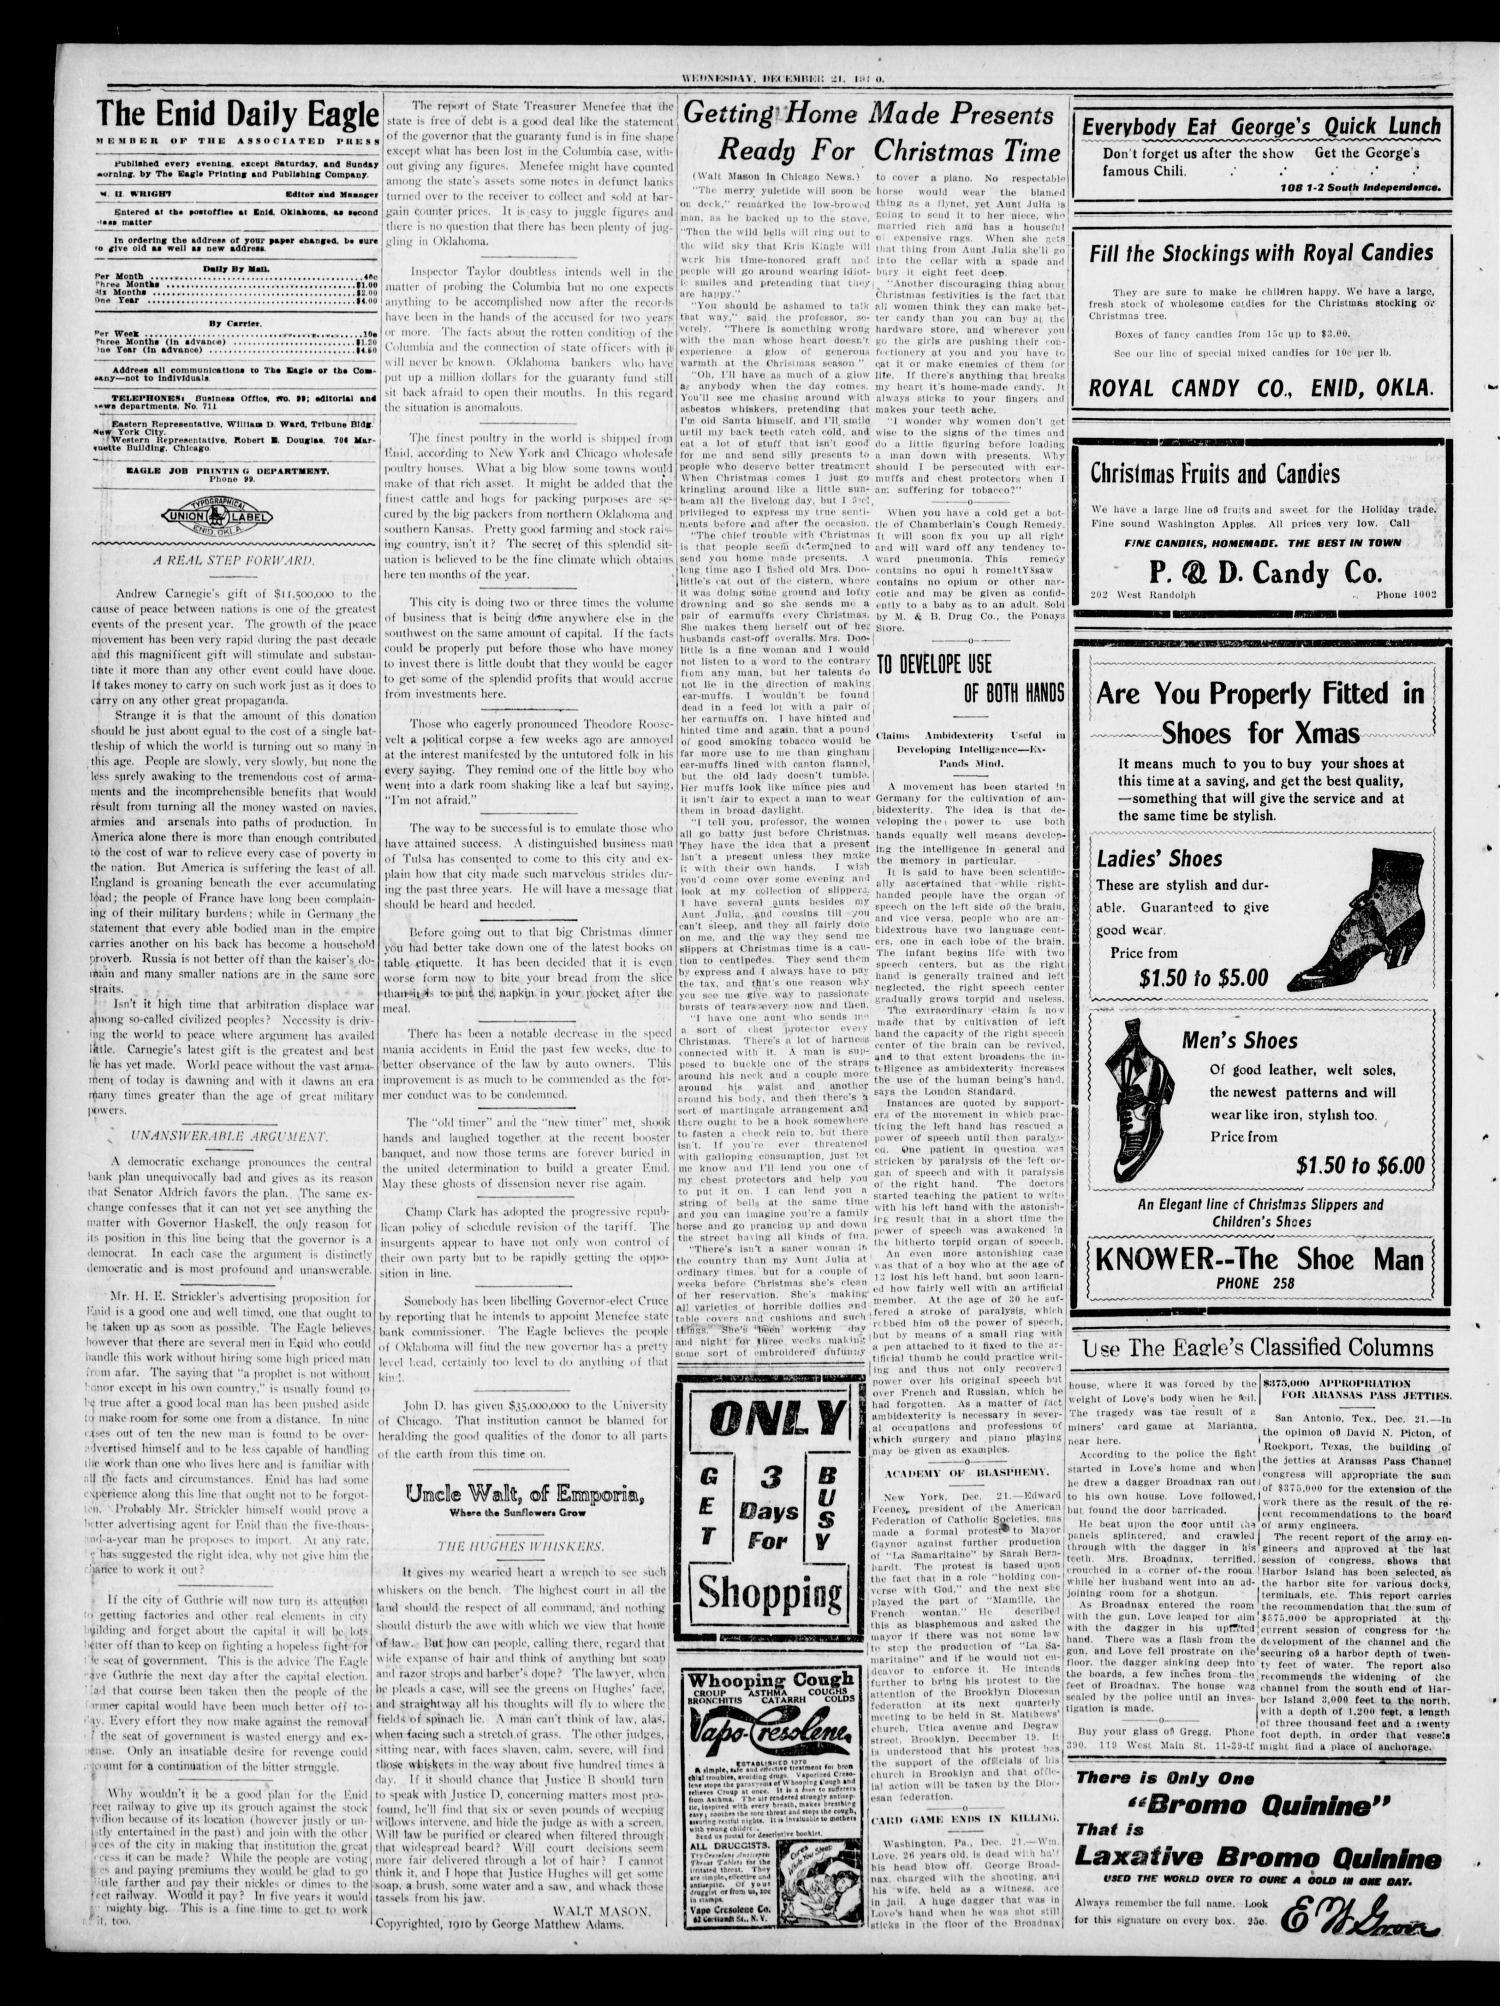 The Enid Daily Eagle. (Enid, Okla.), Vol. 9, No. 277, Ed. 1 Wednesday, December 21, 1910                                                                                                      [Sequence #]: 4 of 8